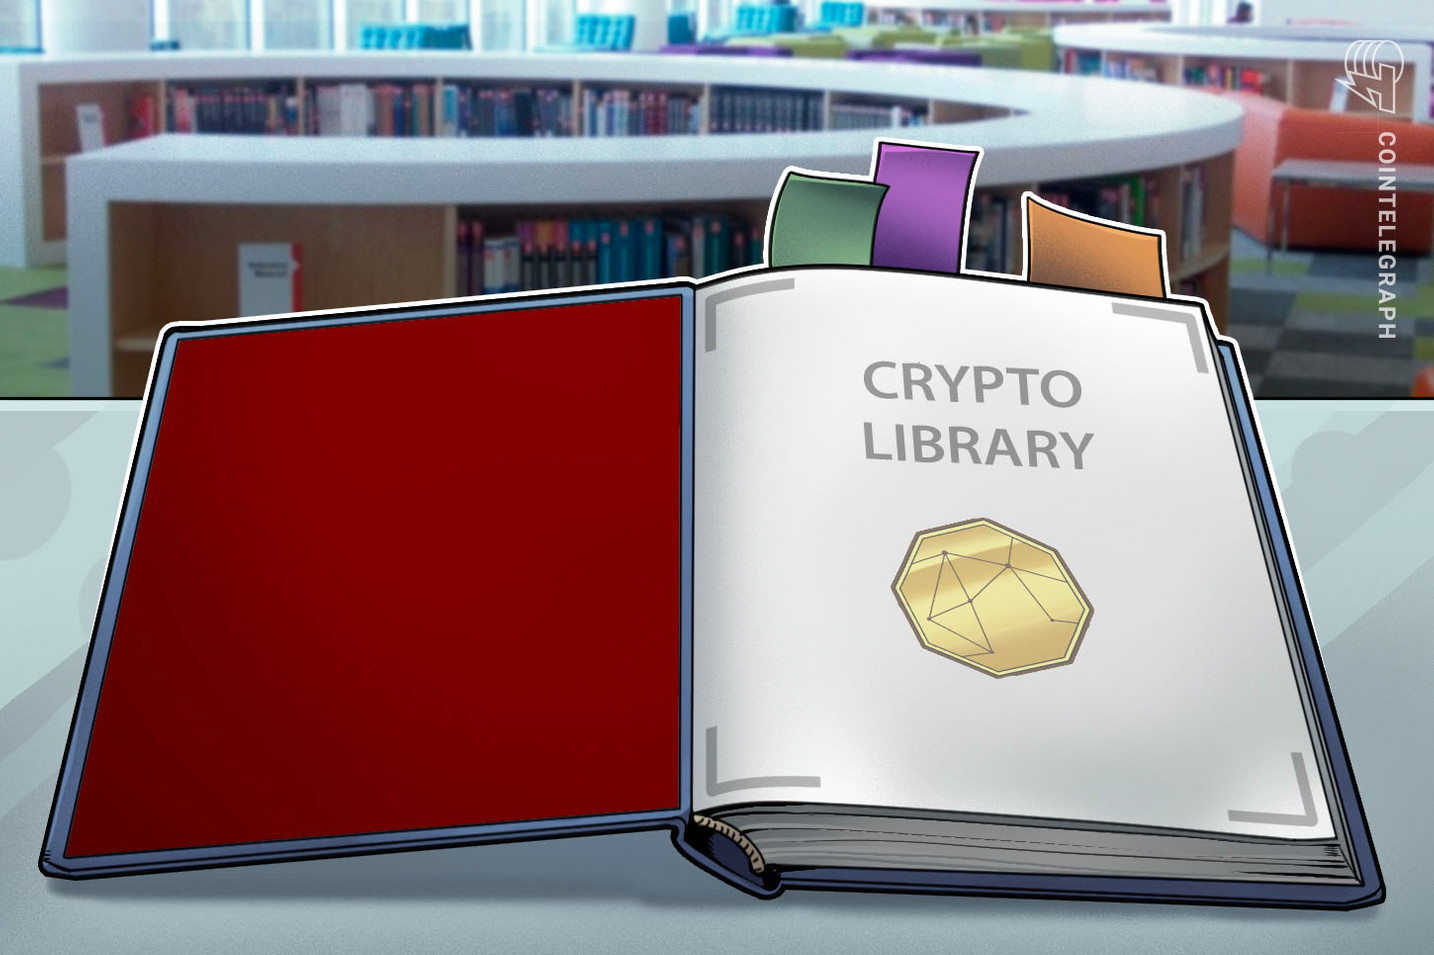 Cryptocurrency Accounting Firm Launches Library of Legal and Tax Advice